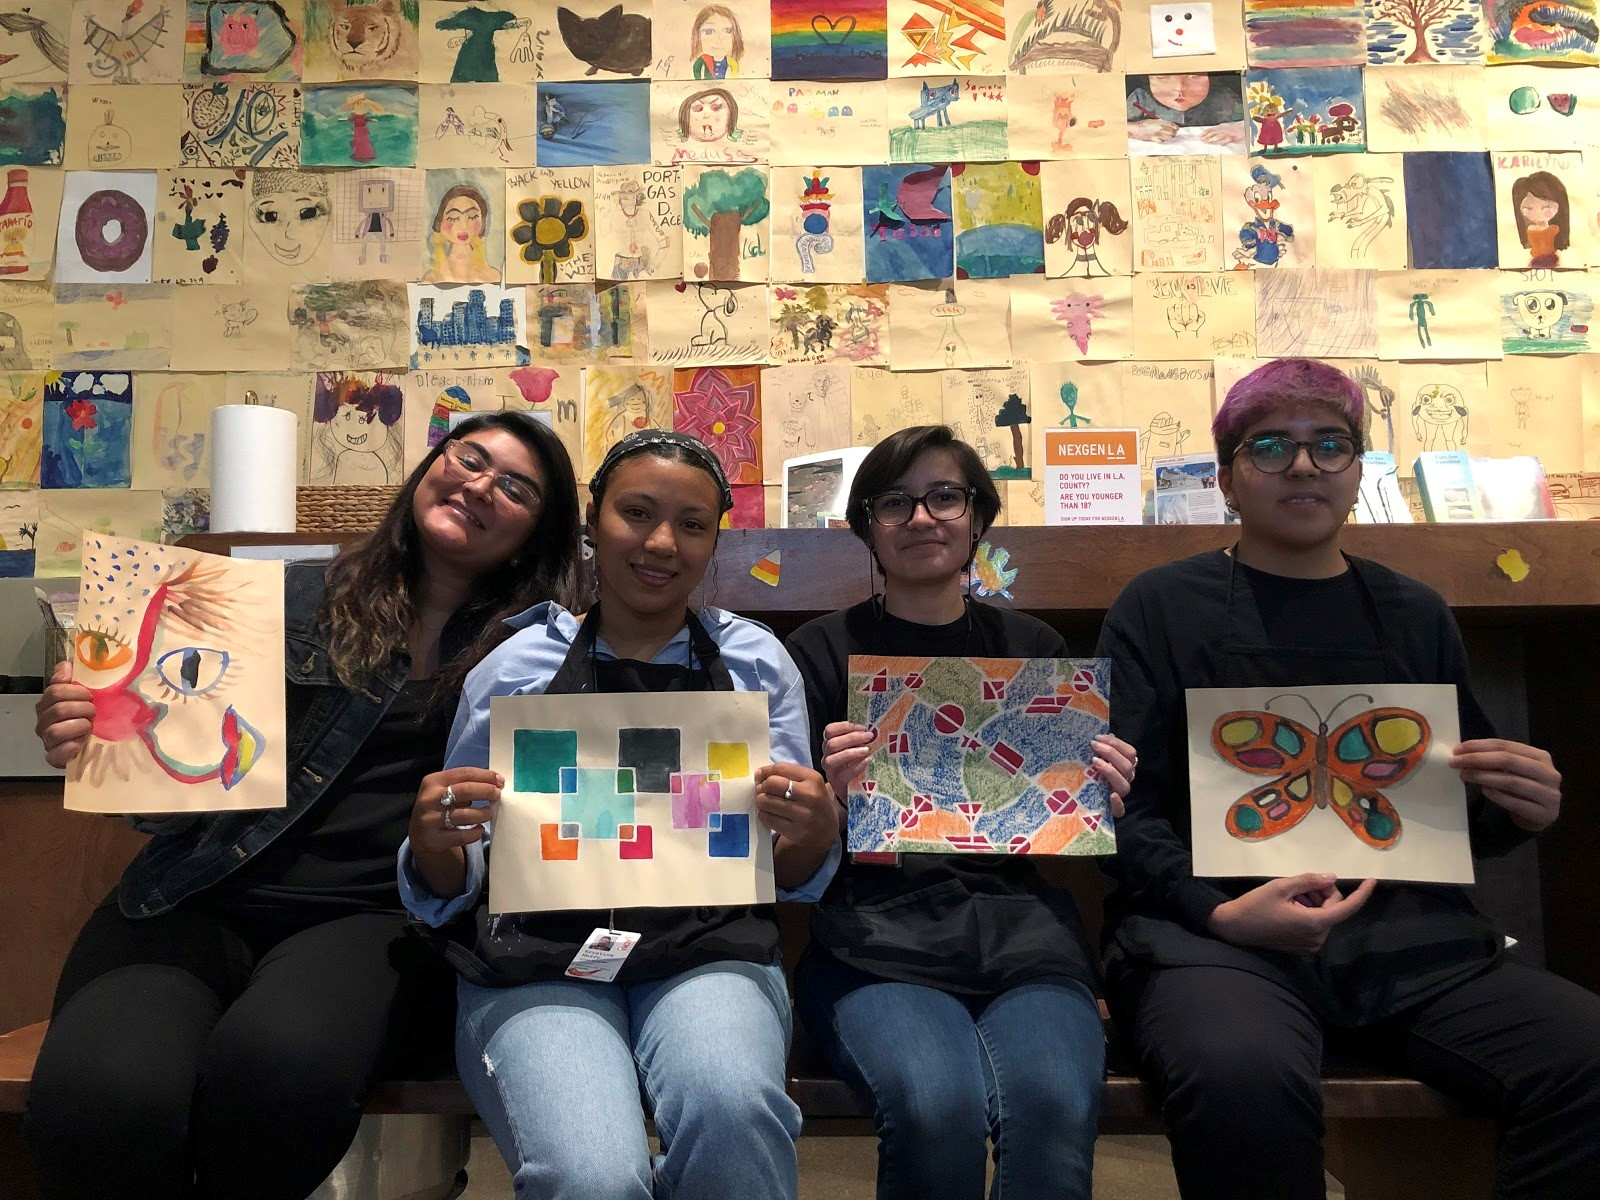 Look for these familiar faces at the pop-ups in the art galleries! (From left: Julia Velasquez, Krys Murry, Susi Castillo, and Ceci Flores)